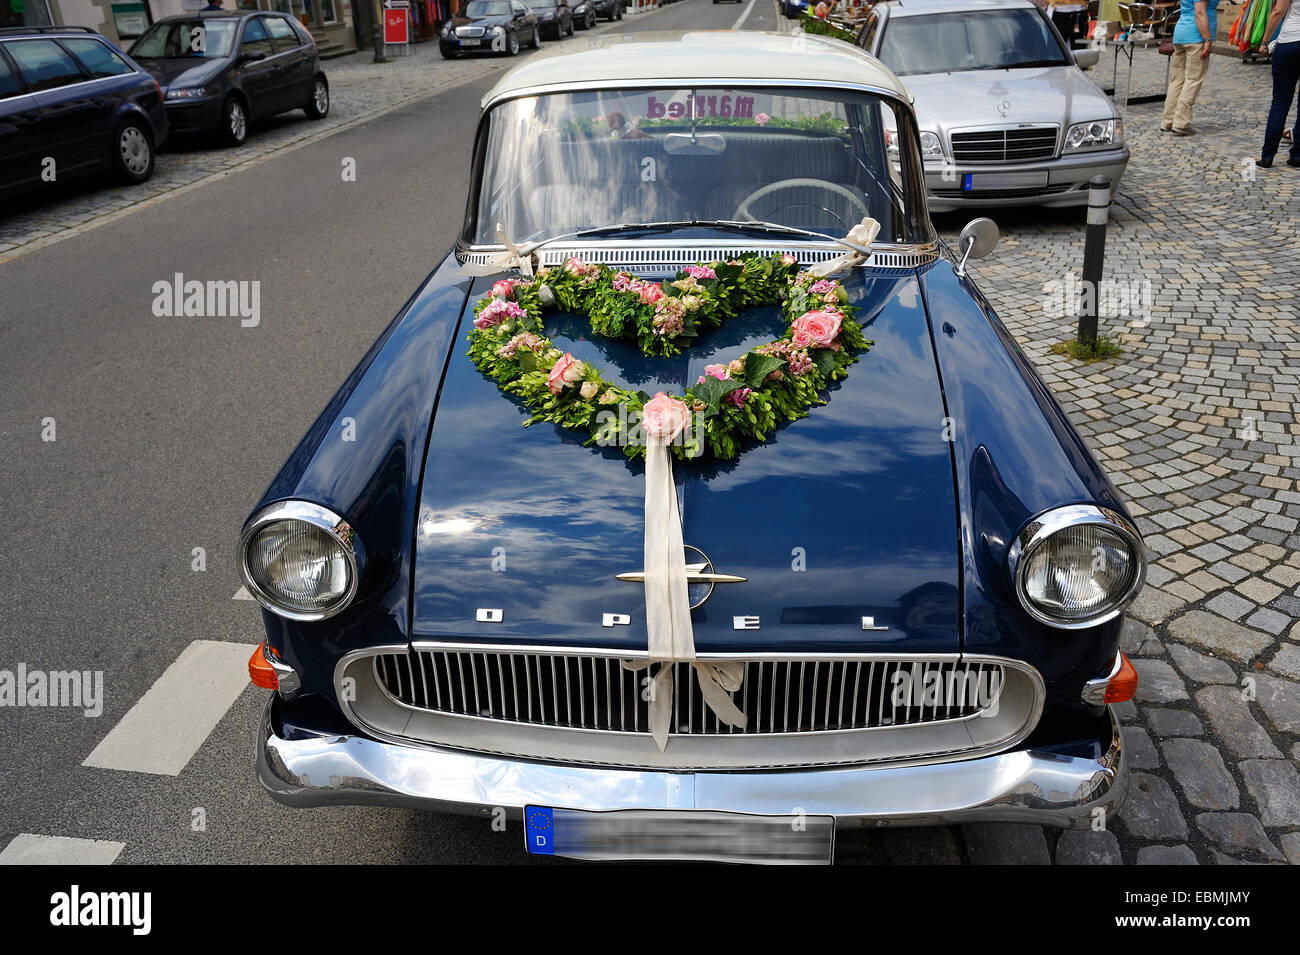 Vehicle decorations stock photos vehicle decorations stock images blue opel rekord p1 car in use as a wedding car with floral decorations on junglespirit Gallery